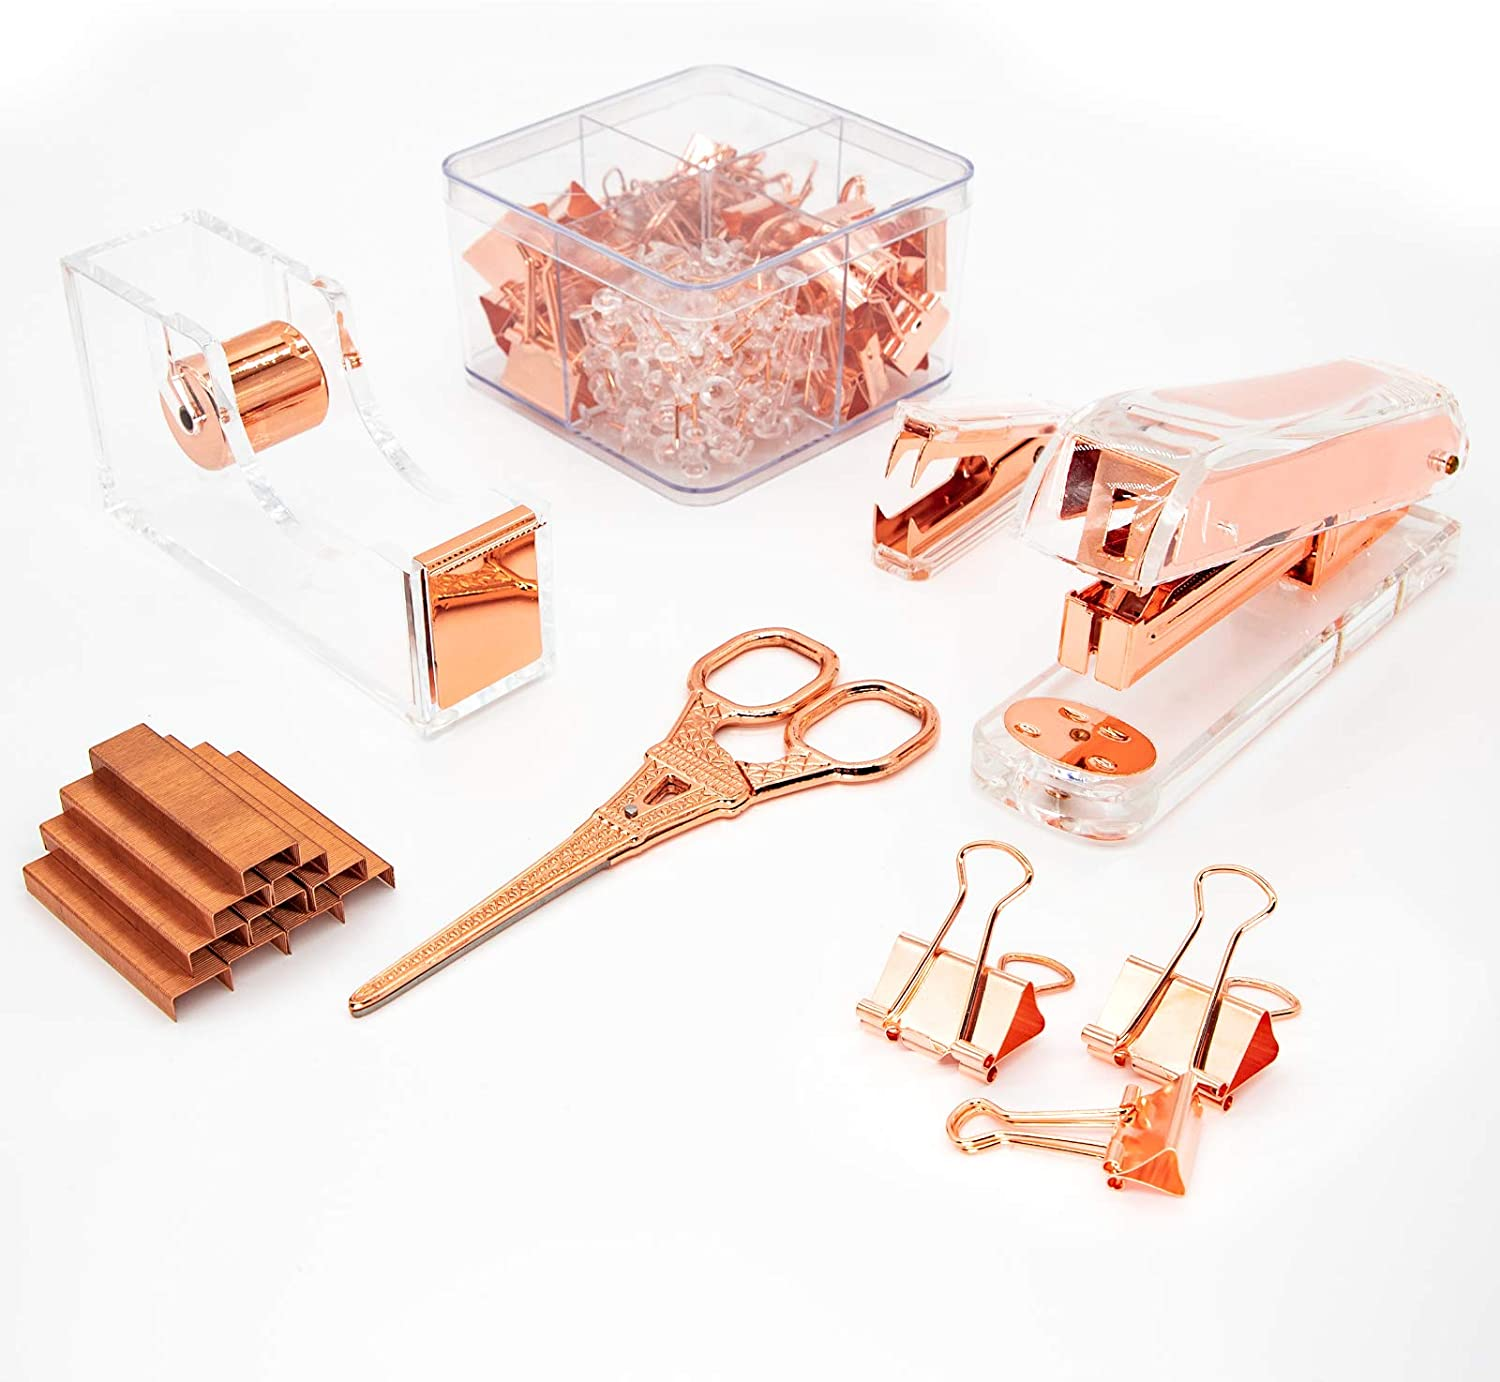 Gutyble Rosegold Office Supplies Set Contains Stapler Package Max 80% OFF Max 88% OFF Ta